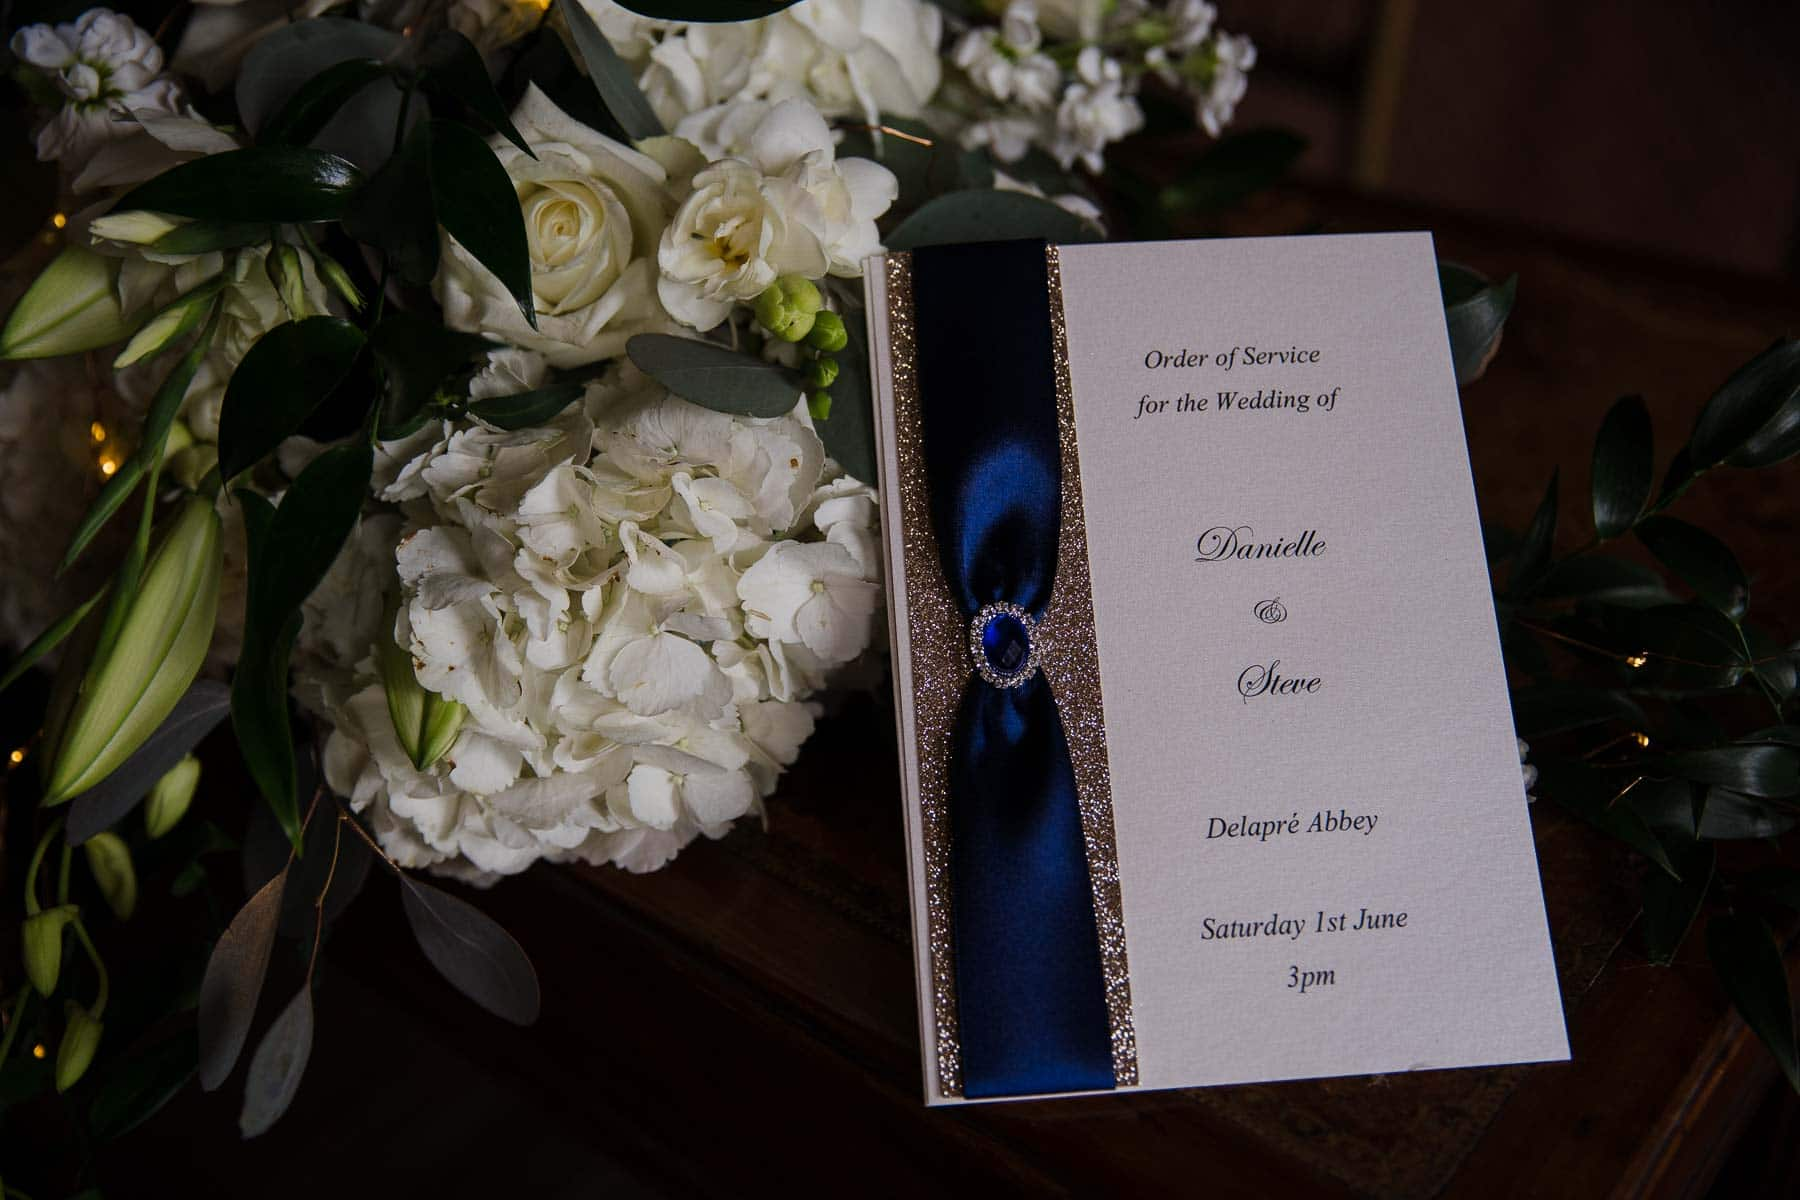 Order of service placed next to a bouquet of flowers